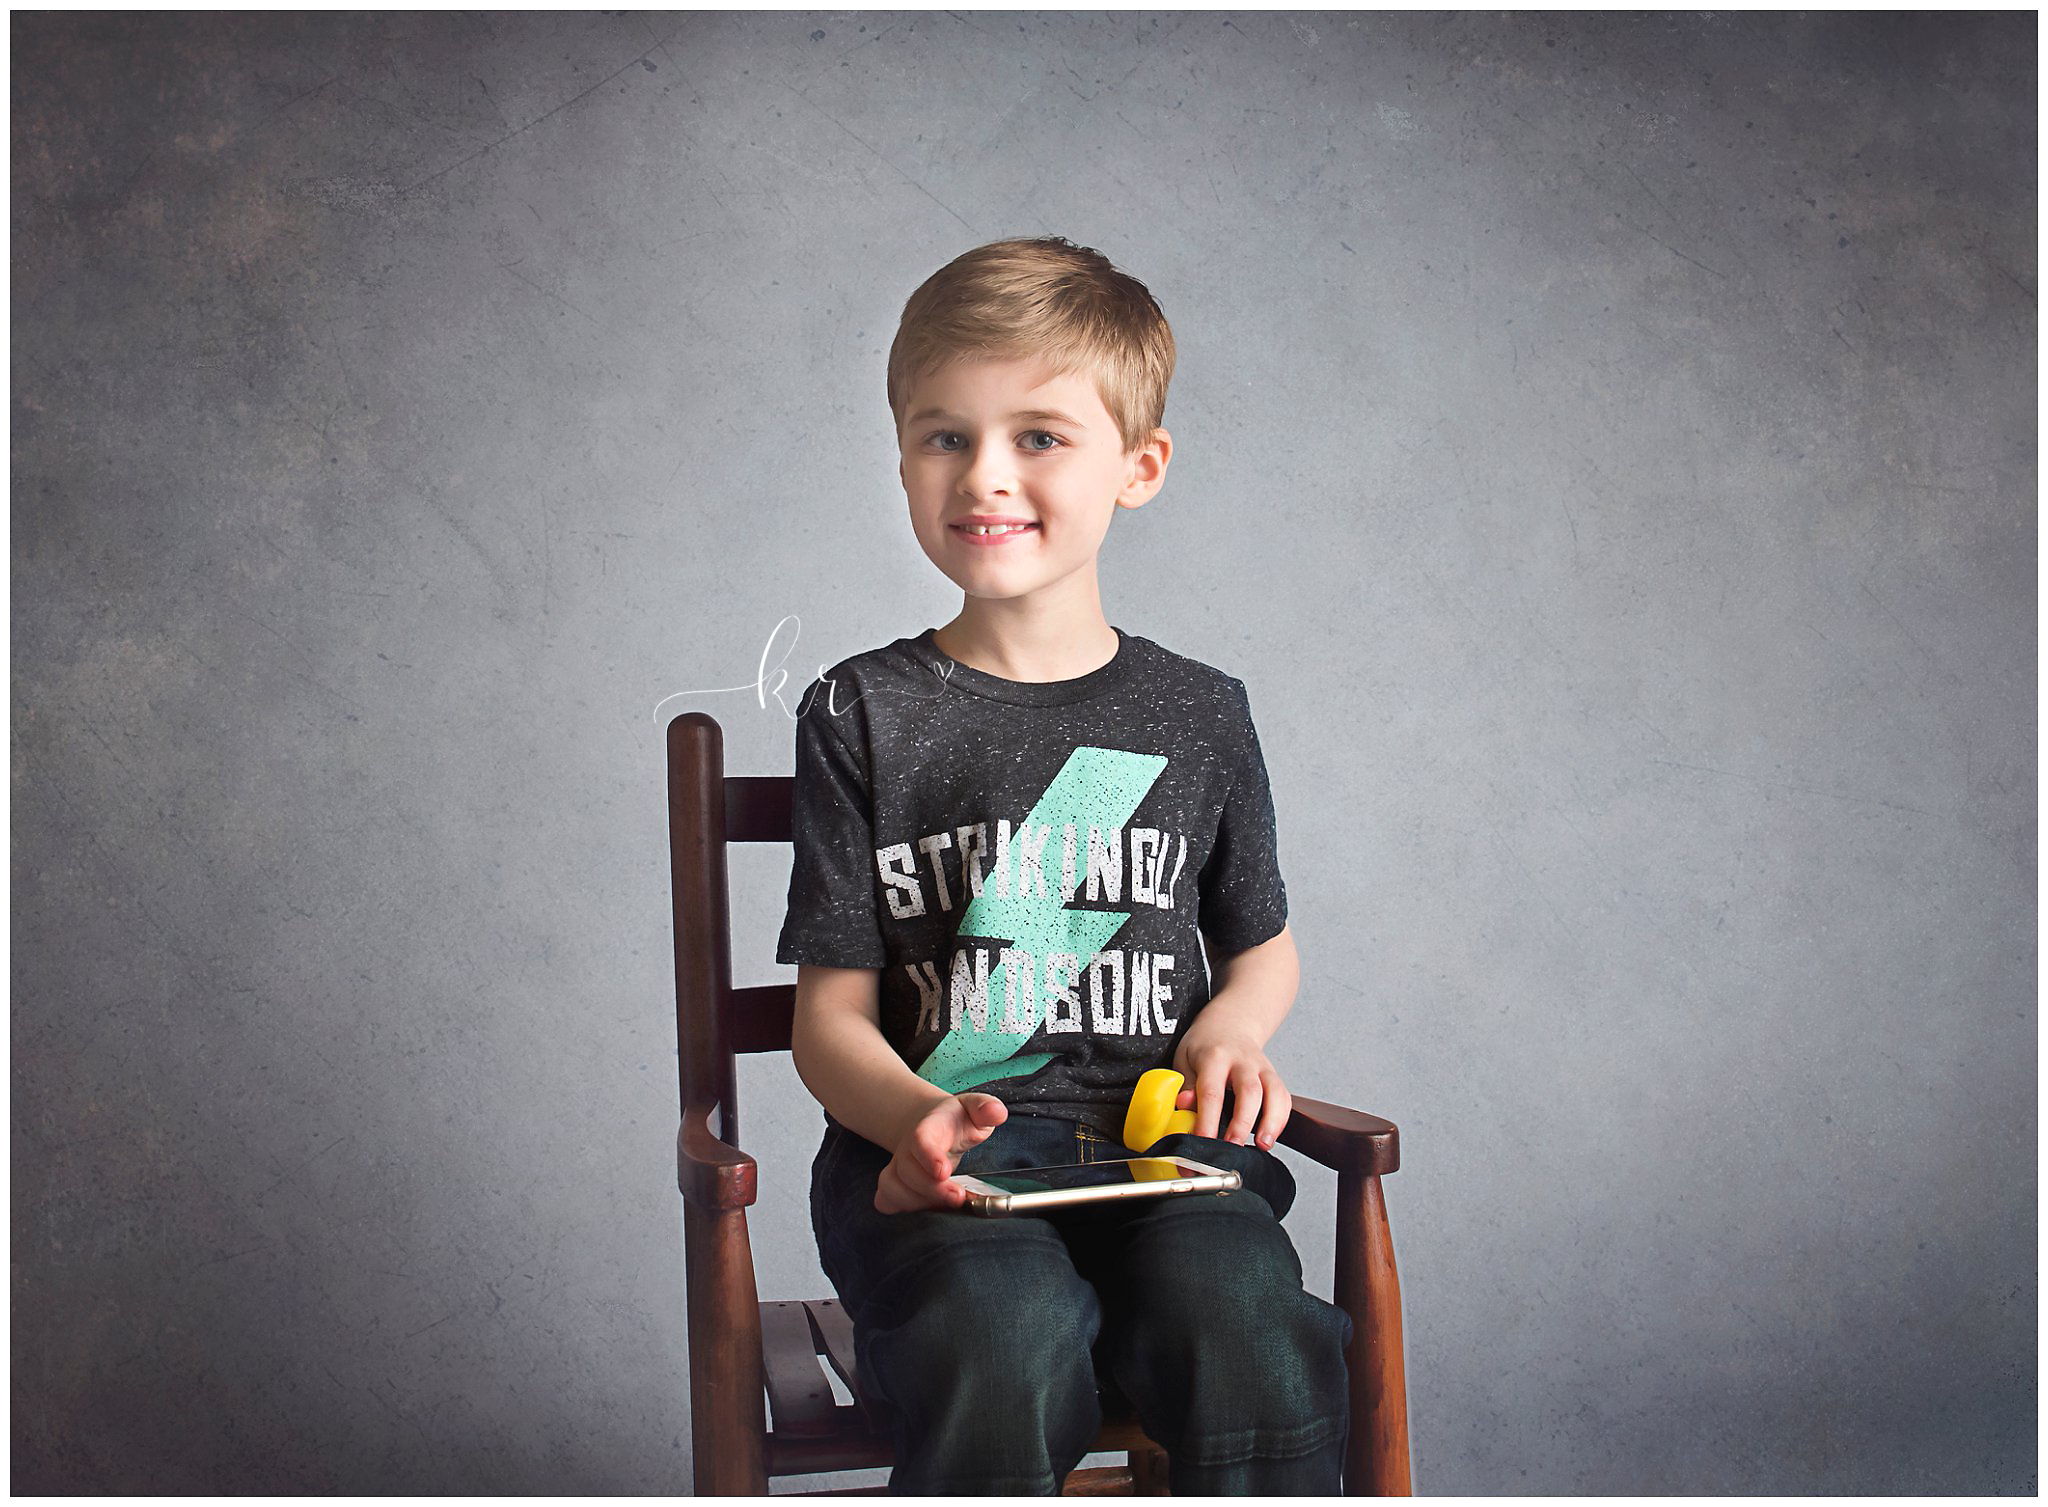 kathy rogers photography-beautifully different-little-boy-autism-01